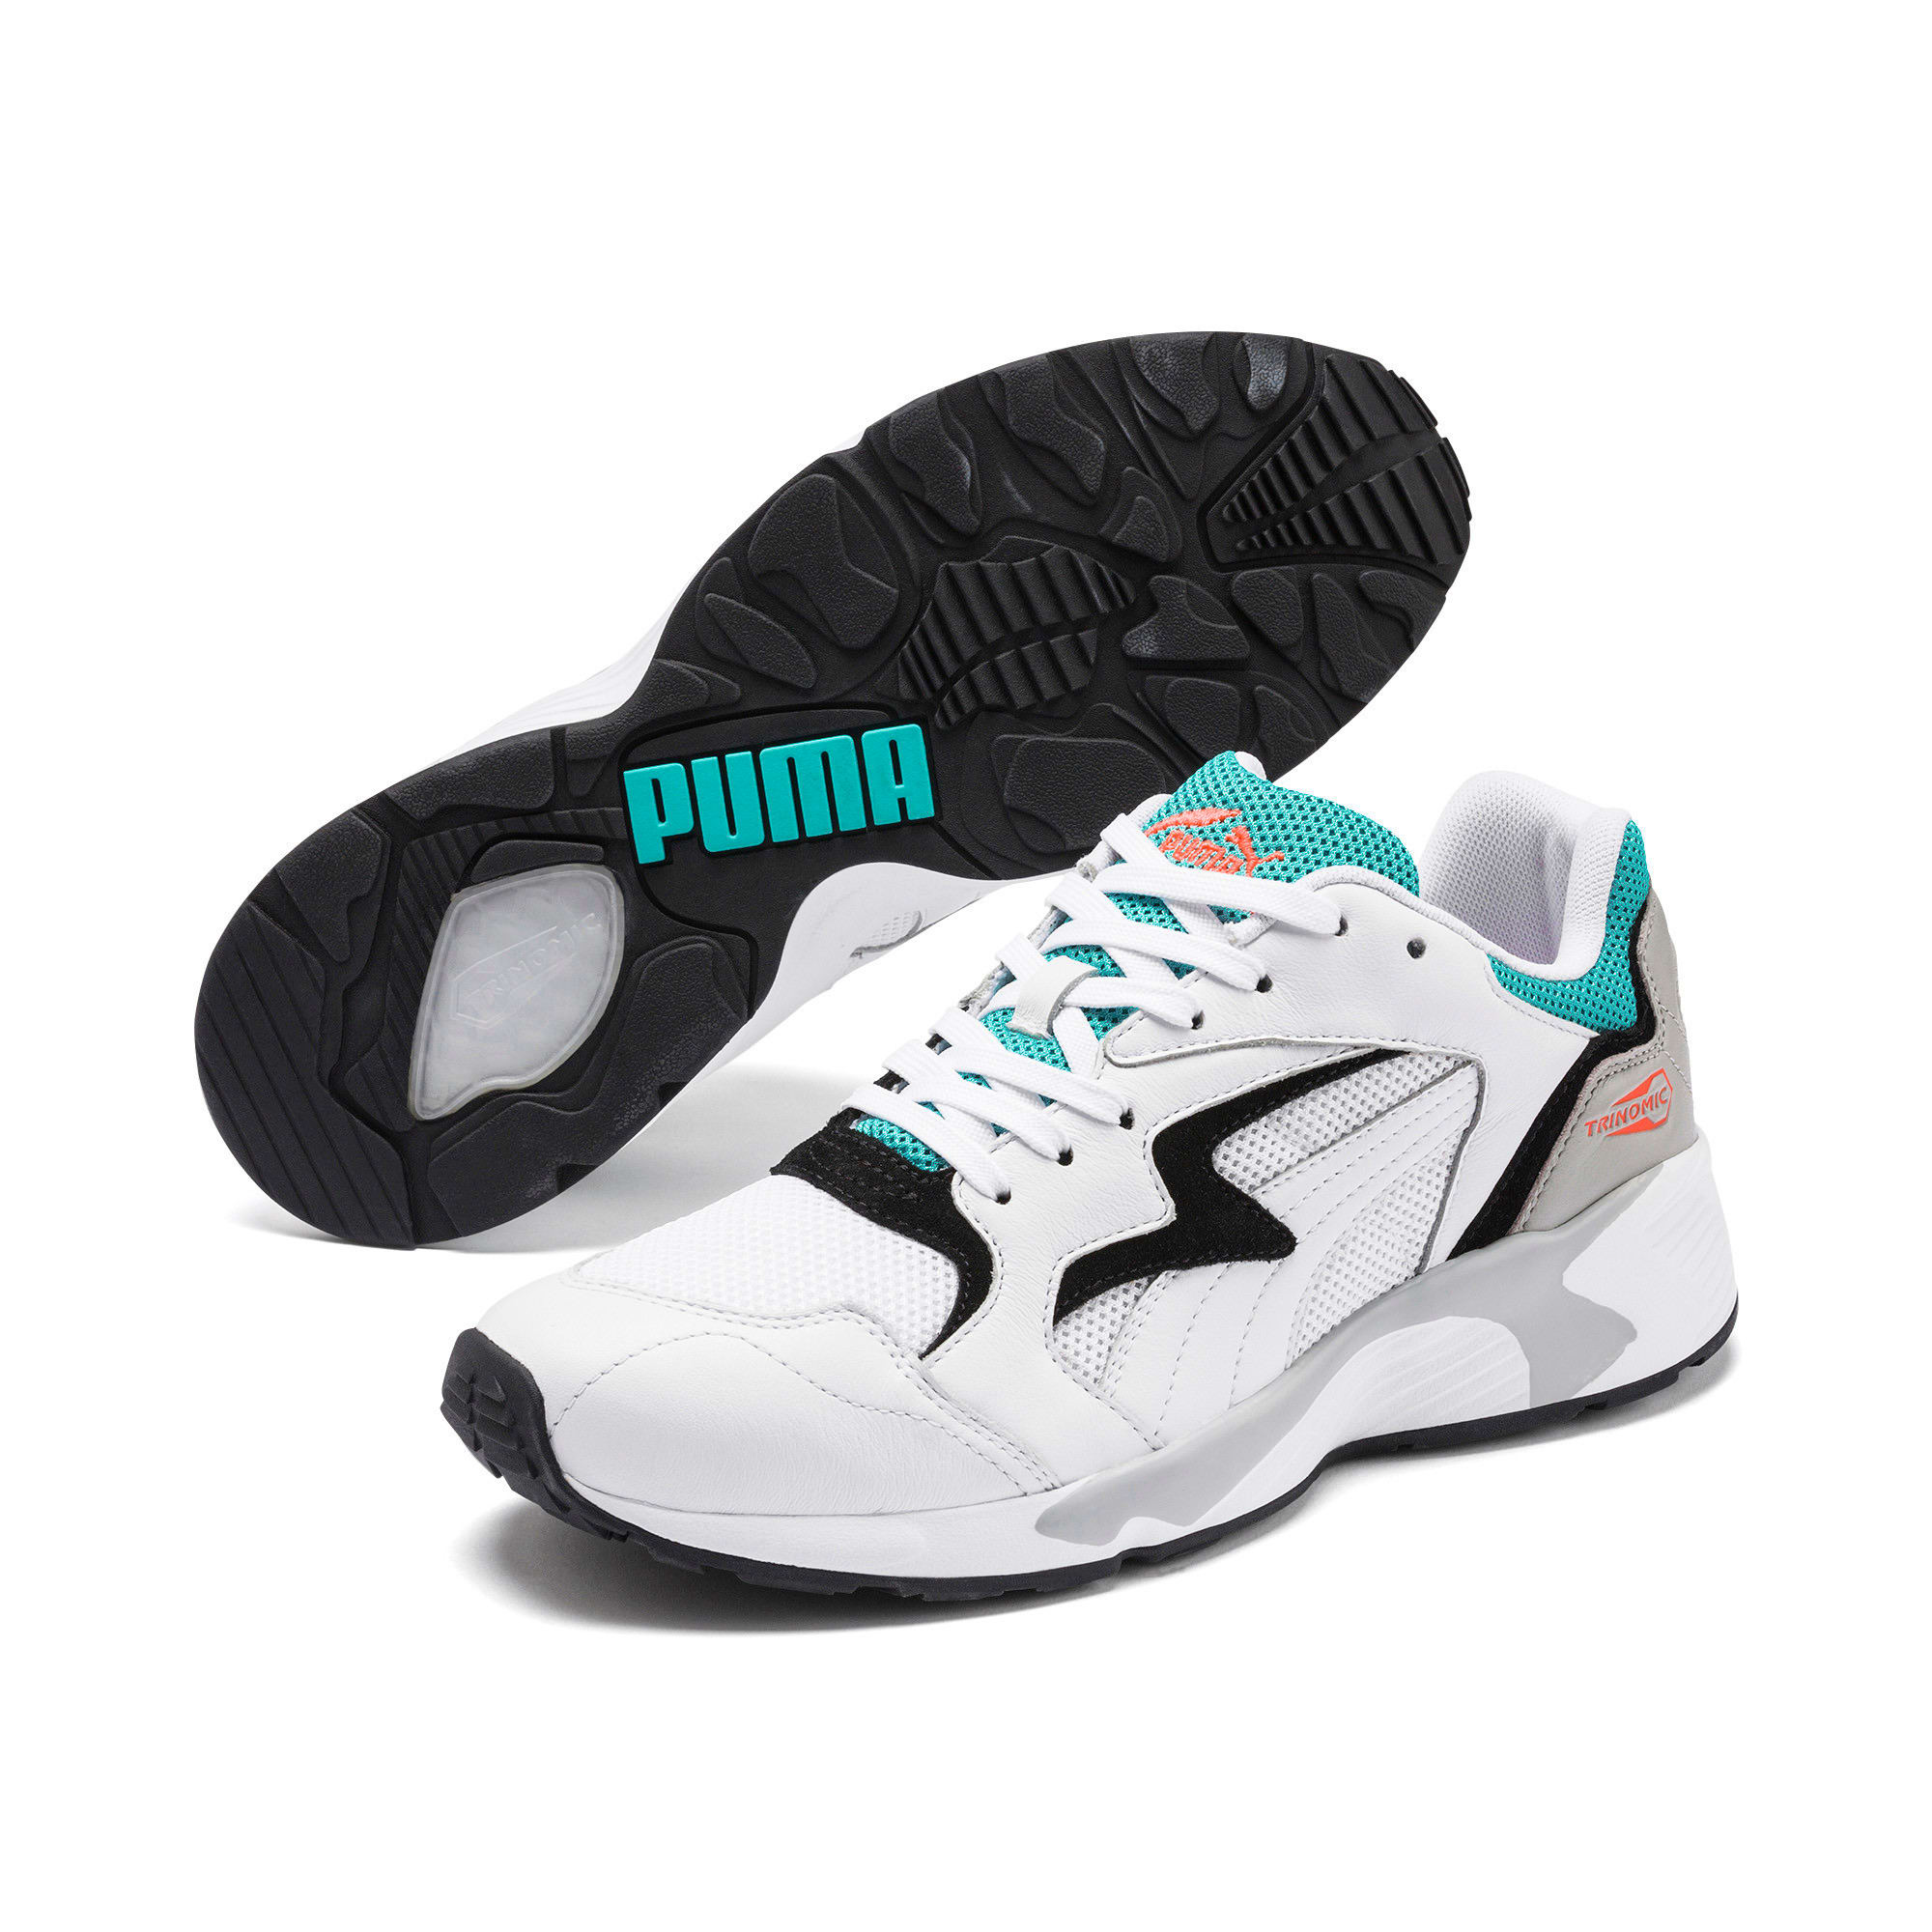 Thumbnail 2 of Prevail Classic Trainers, Puma White-Blue Turquoise, medium